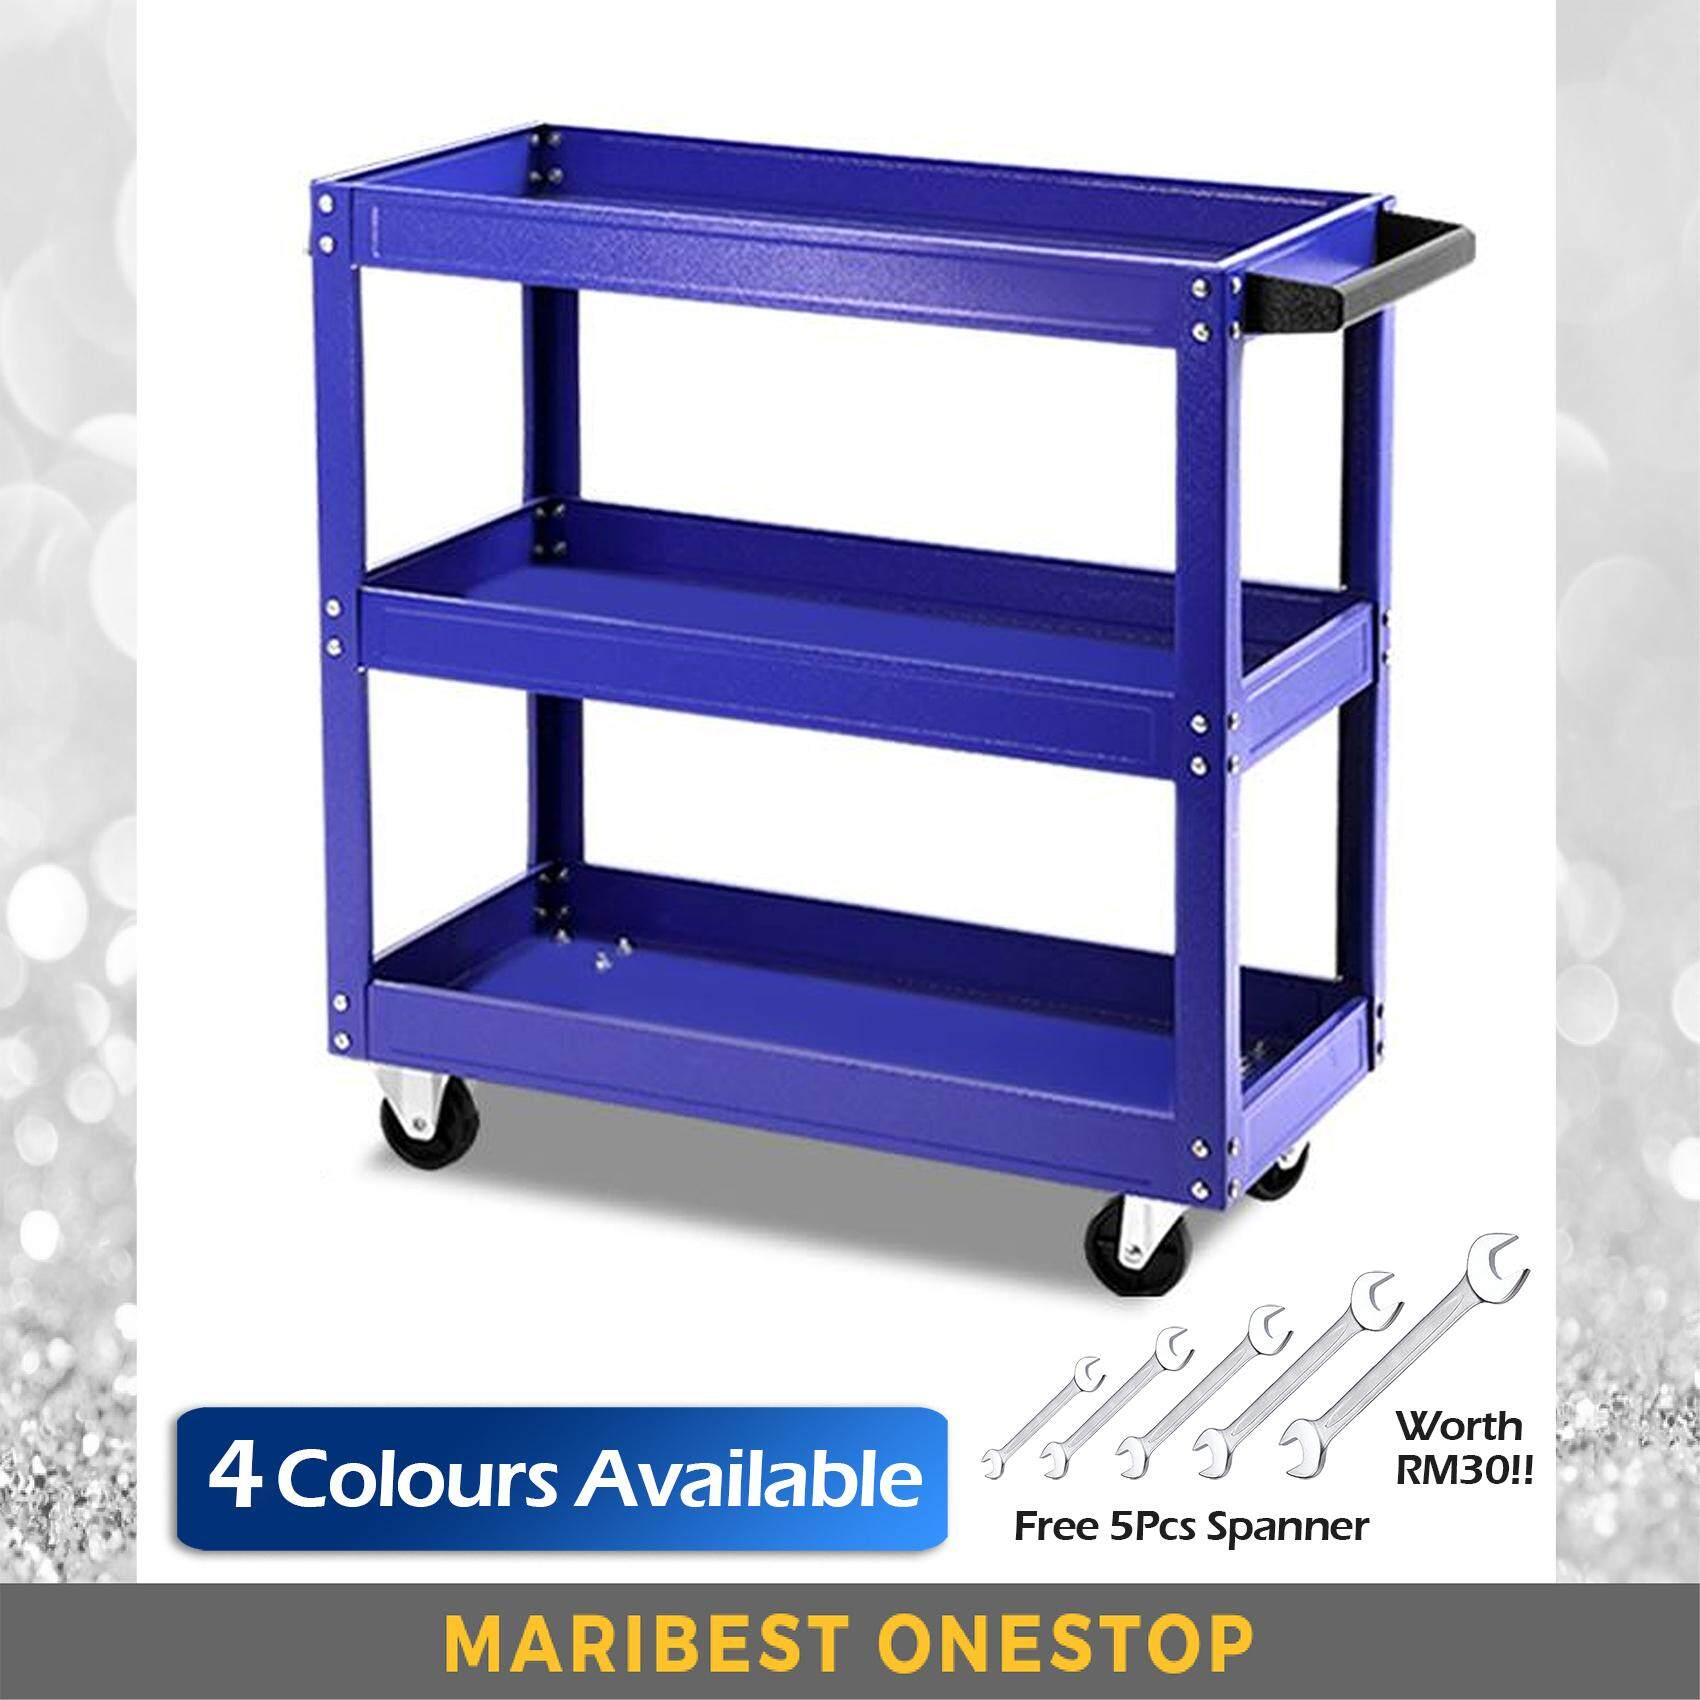 3 Layers Service Cart Metal Steel Tool Shelf Storage (Red/Blue/Orange/Grey) - Free 5 pcs Spanner